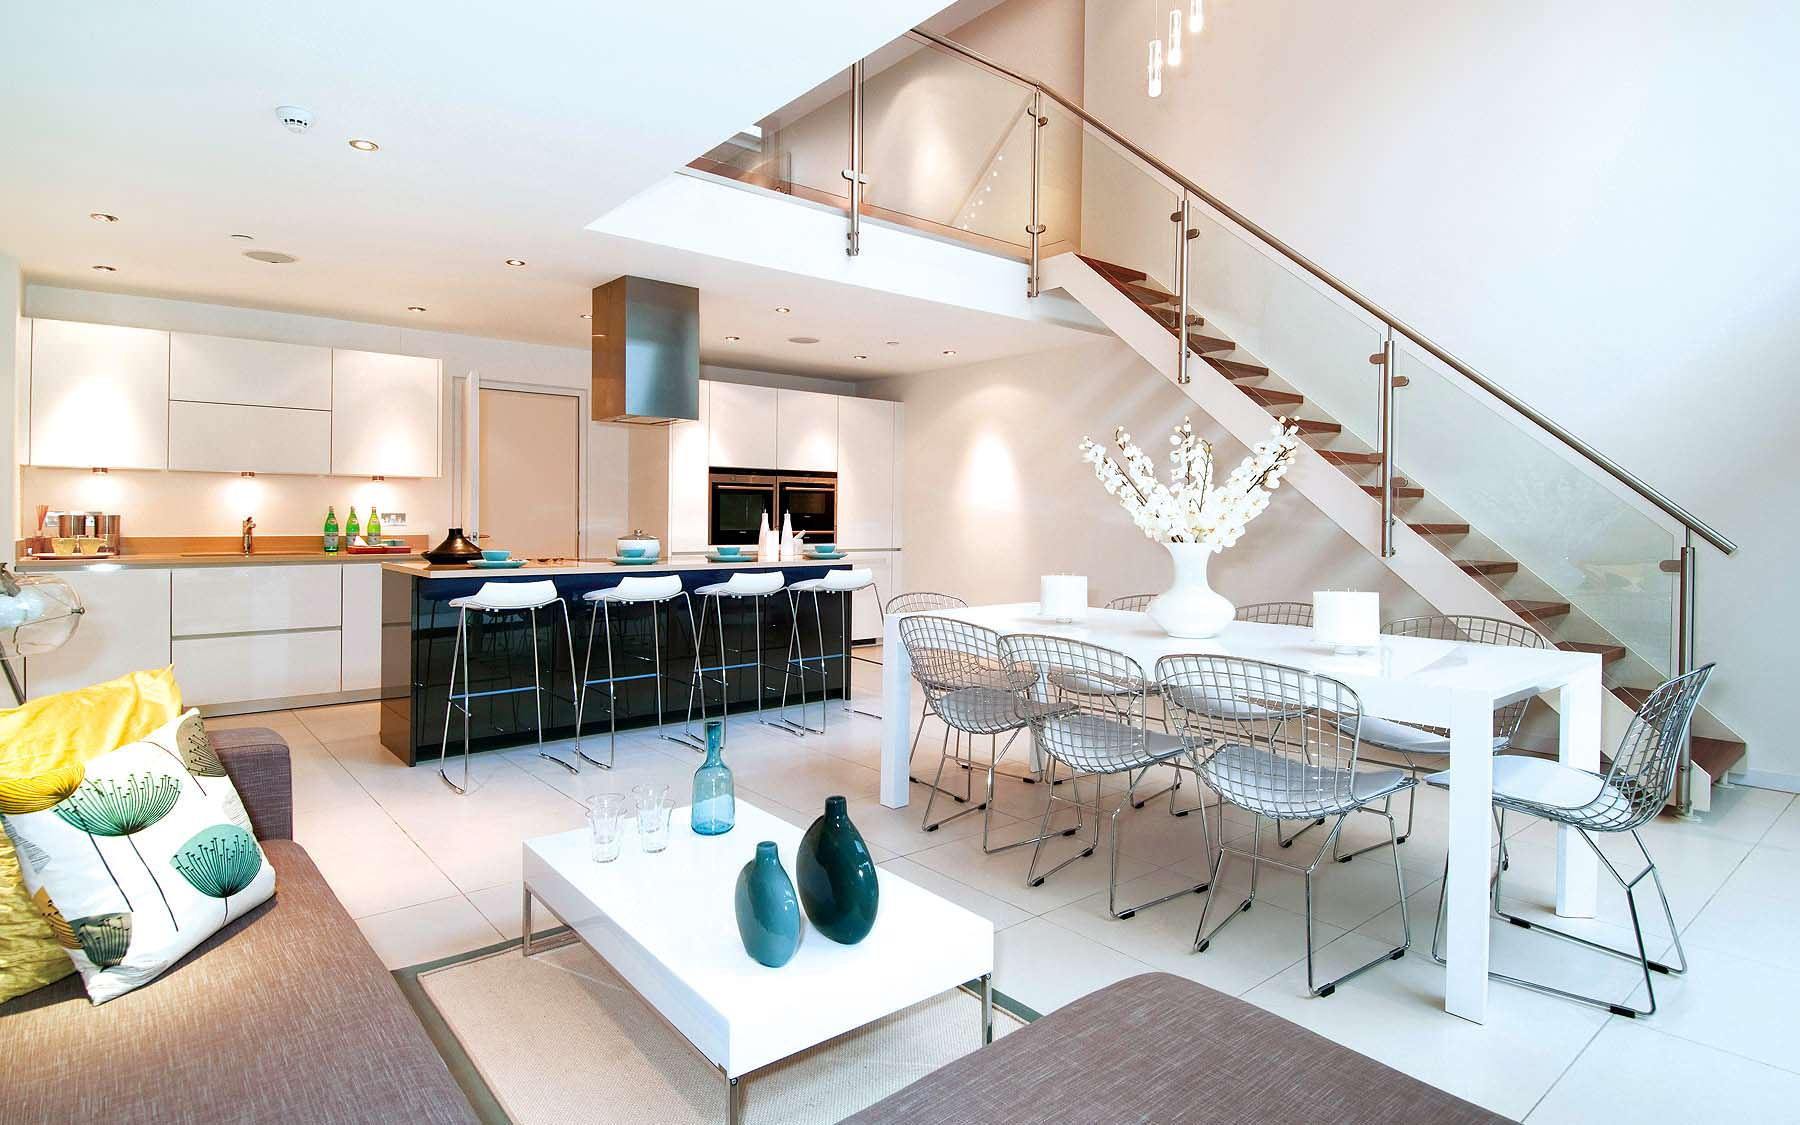 A sleek and inviting townhouse